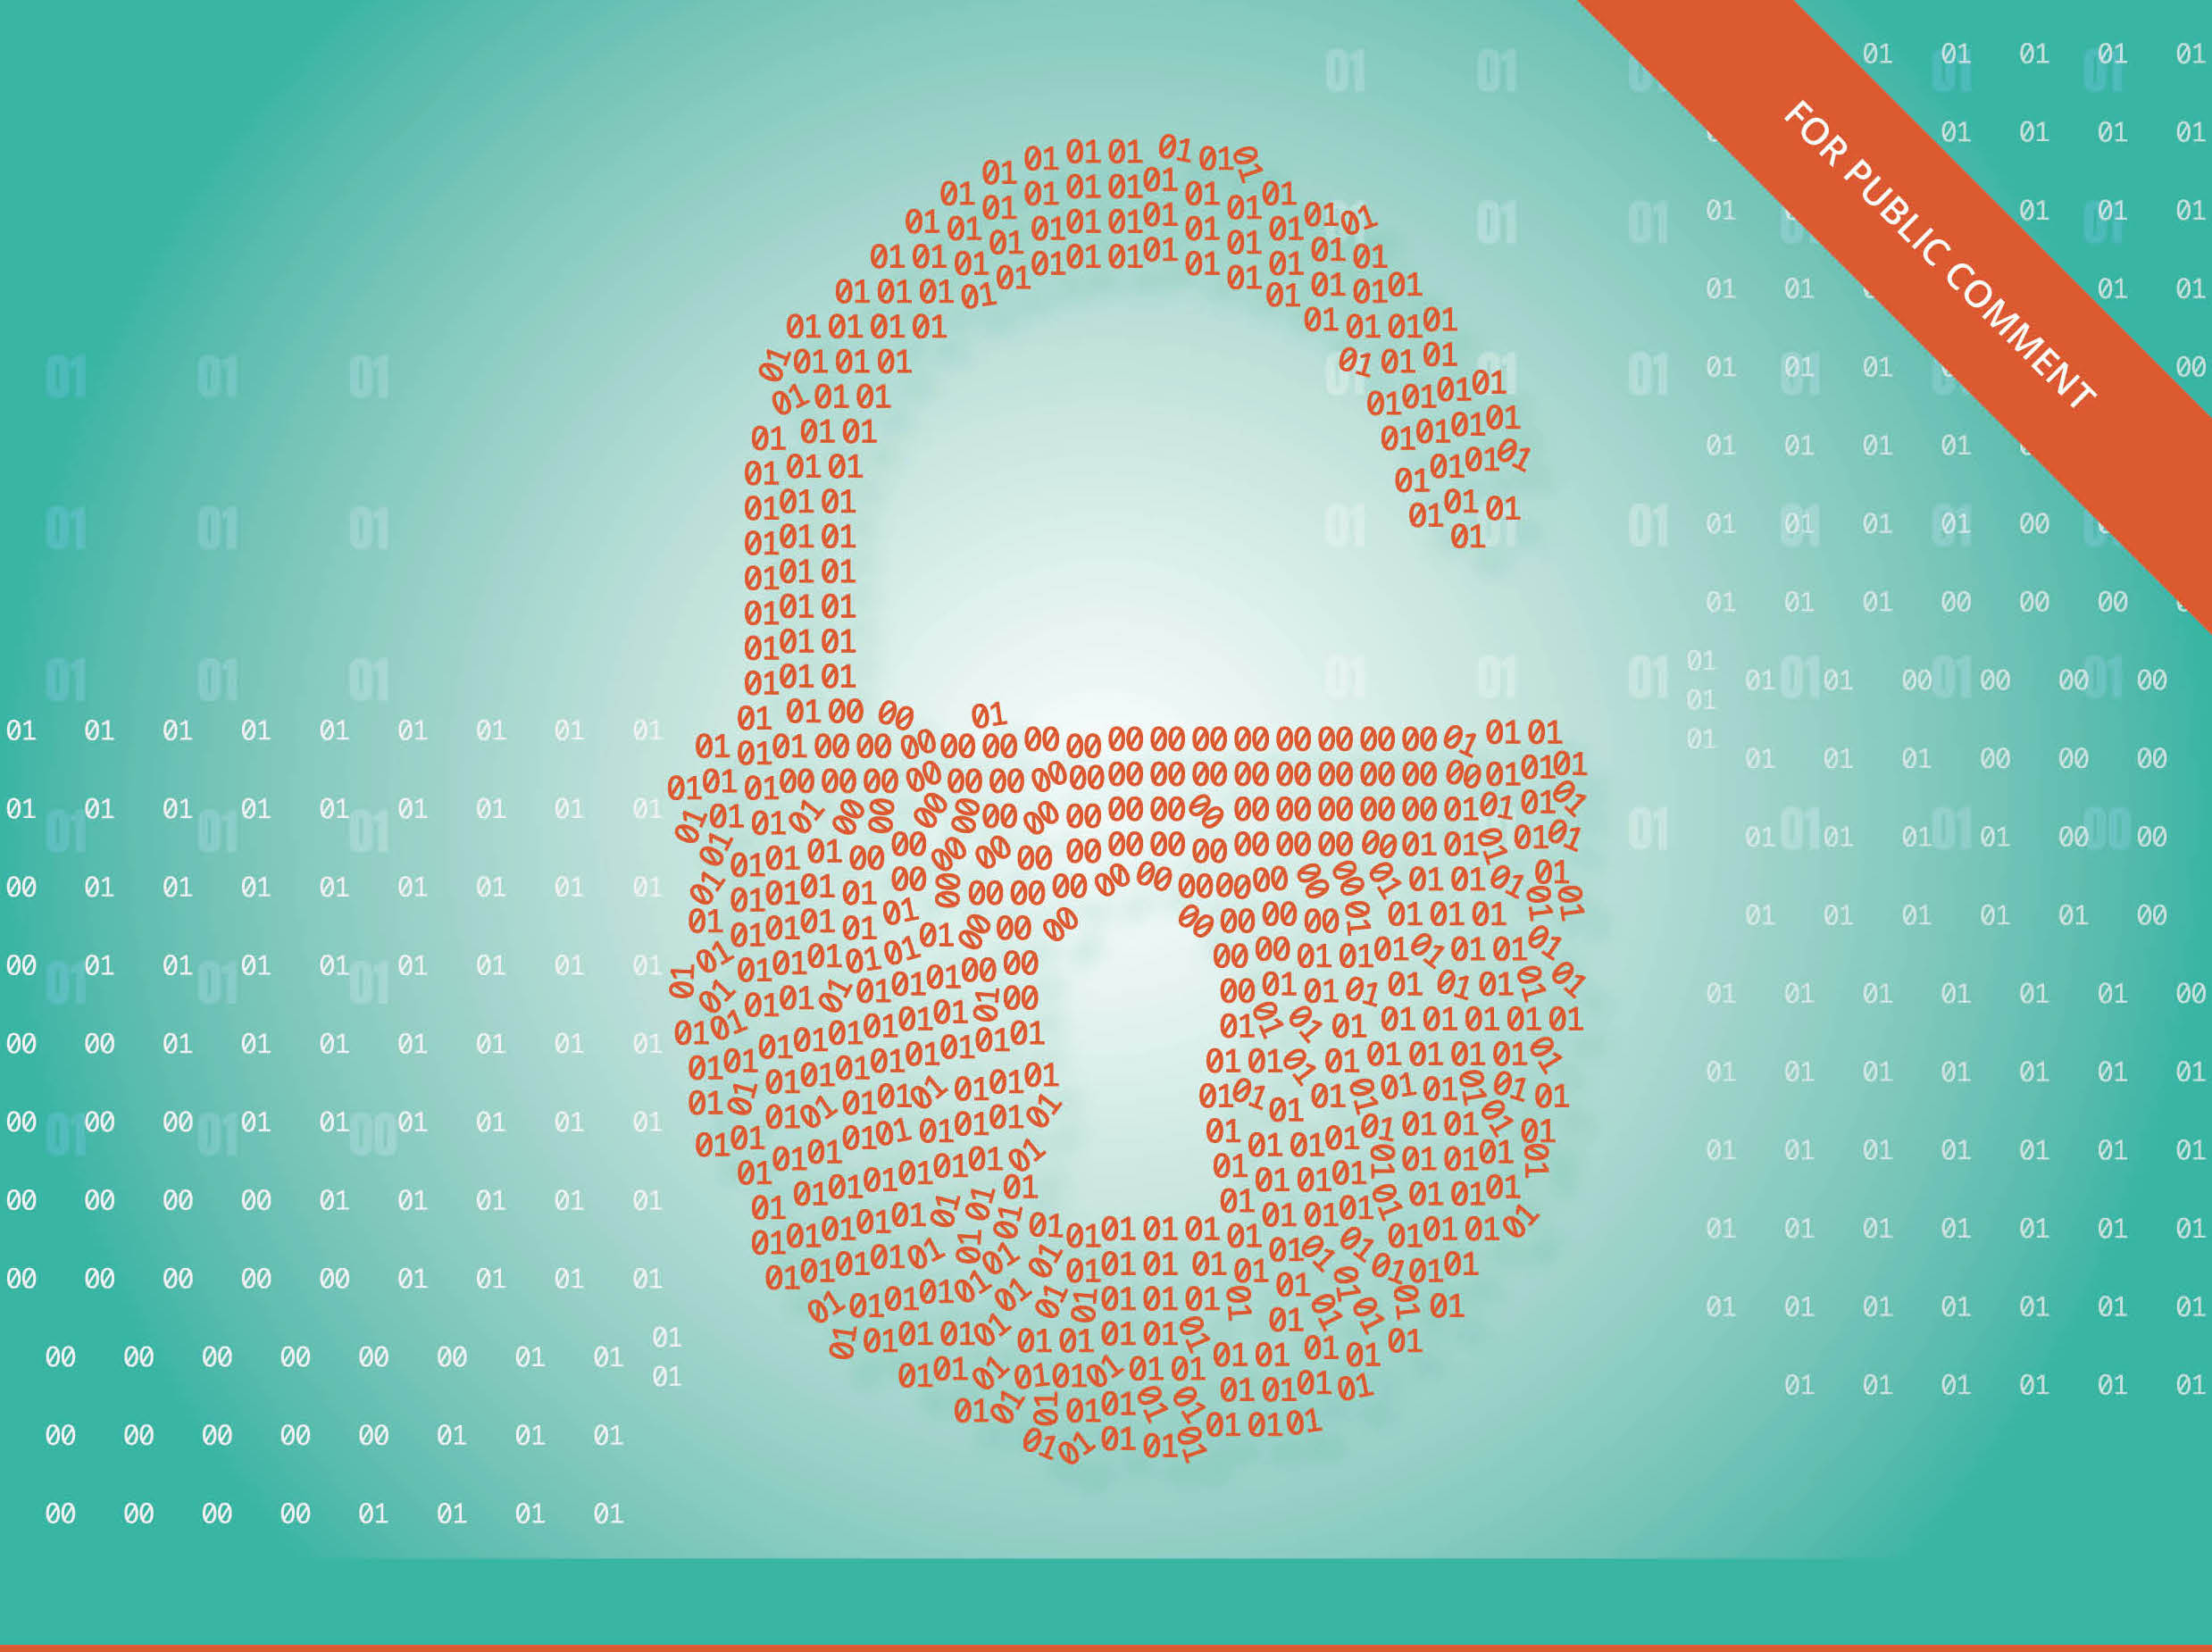 LAND PORTAL AND OPEN DATA CHARTER PUBLISH  OPEN UP GUIDE ON LAND GOVERNANCE